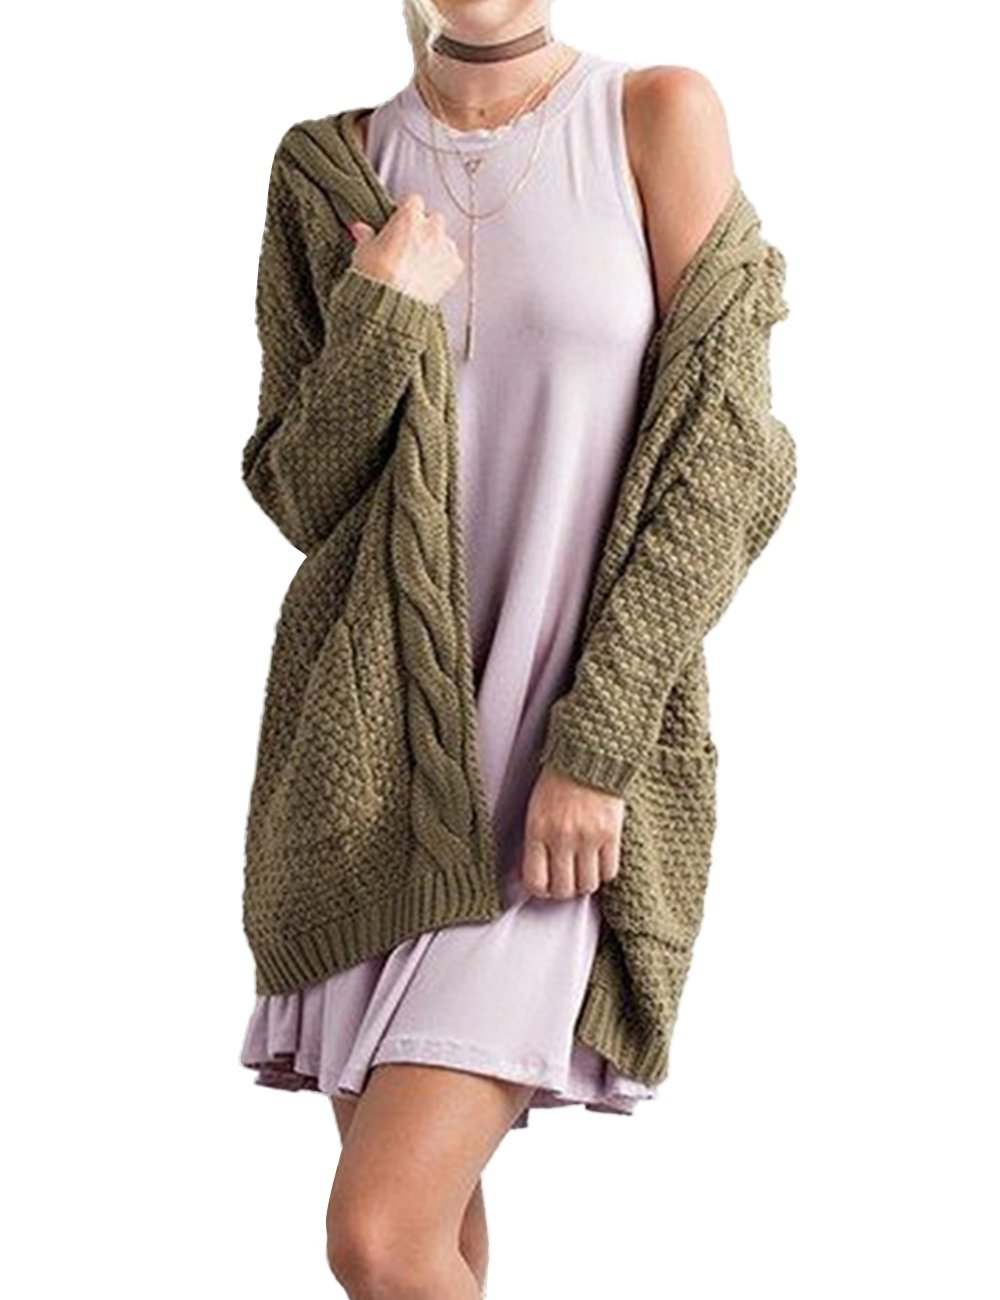 Xiakolaka Women's Long Sleeve Chunky Sweater Open Front Cable Knit Cardigans